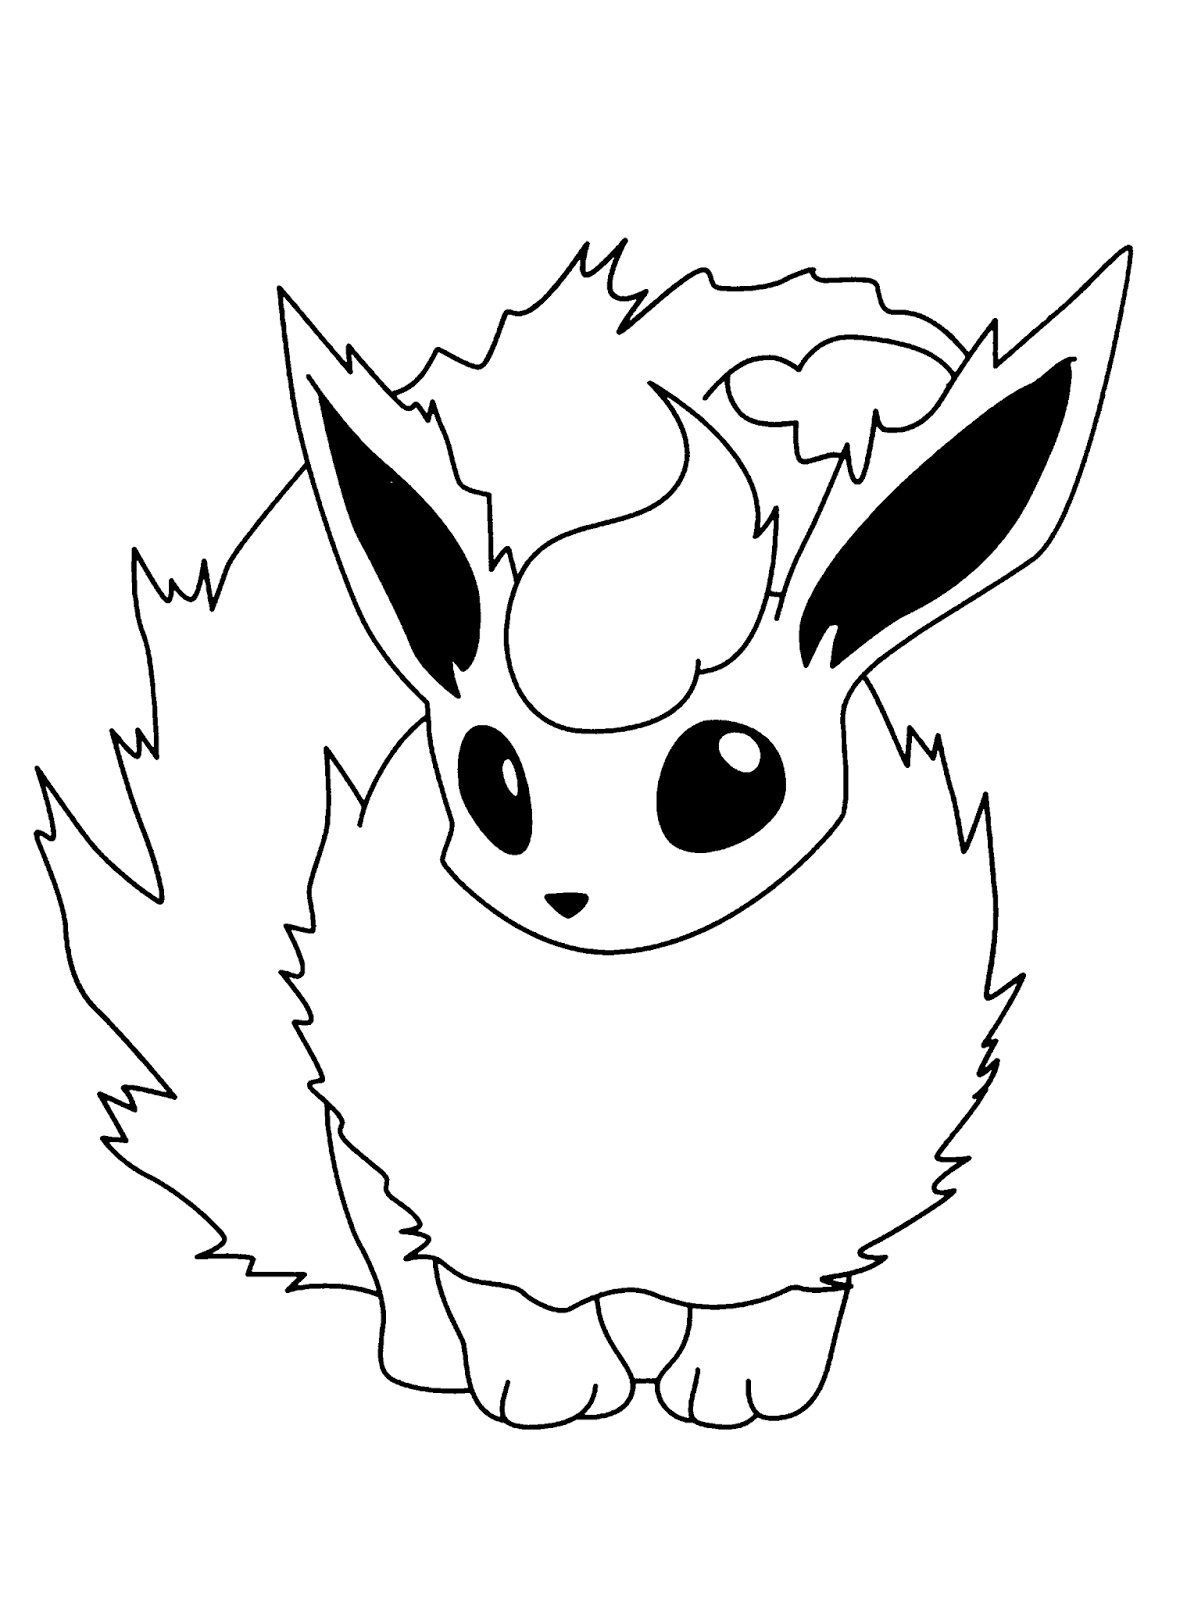 pokemon to print coloring pages pokémon animated images gifs pictures to pokemon print